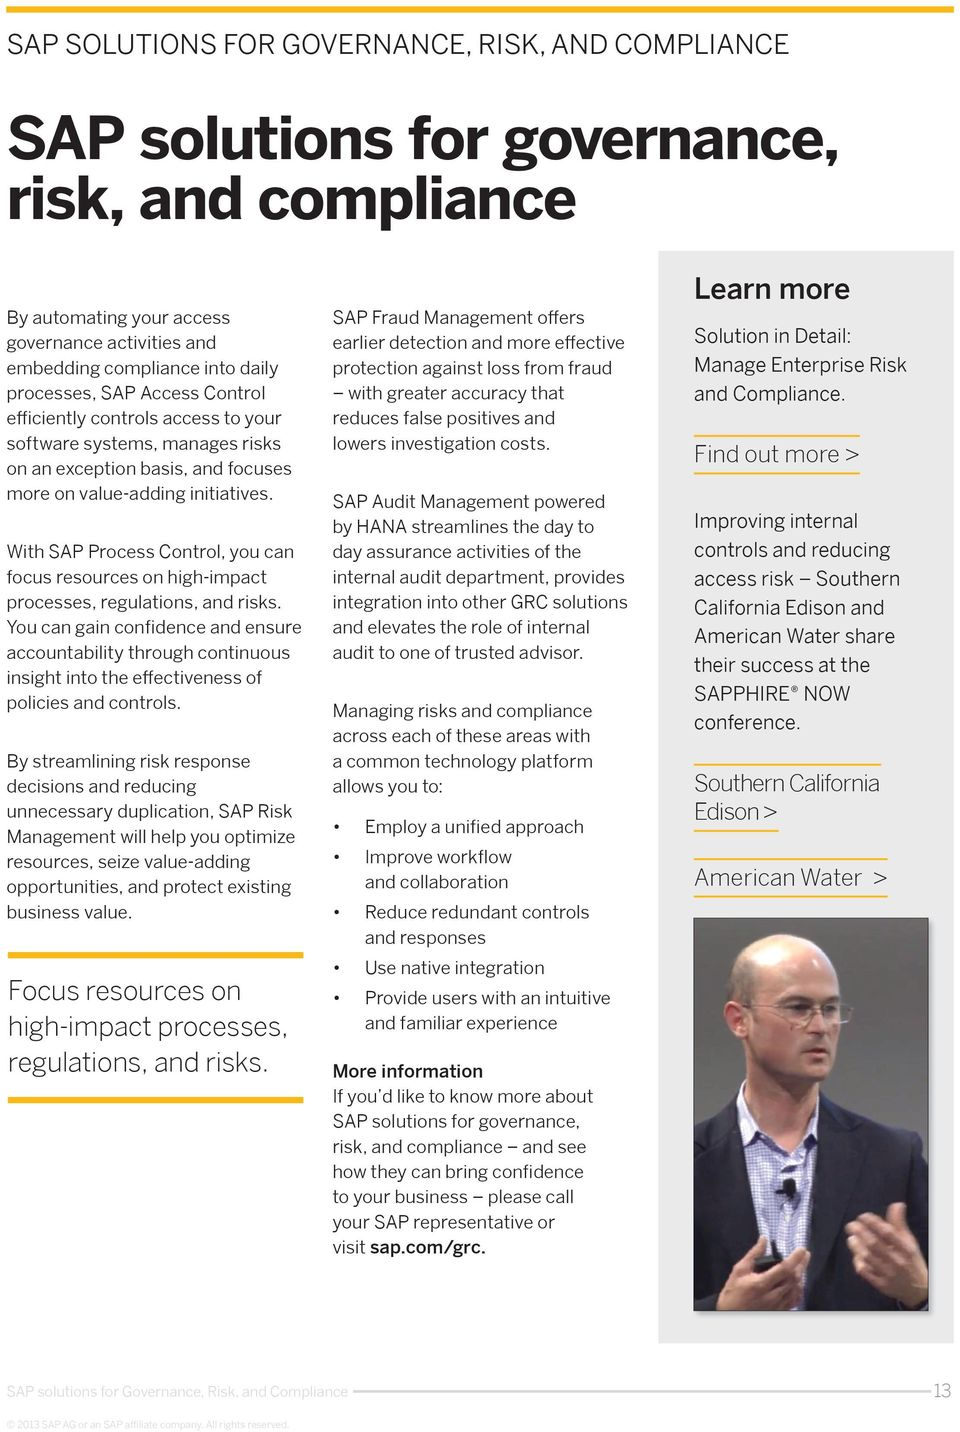 With SAP Process Control, you can focus resources on high-impact processes, regulations, and risks.